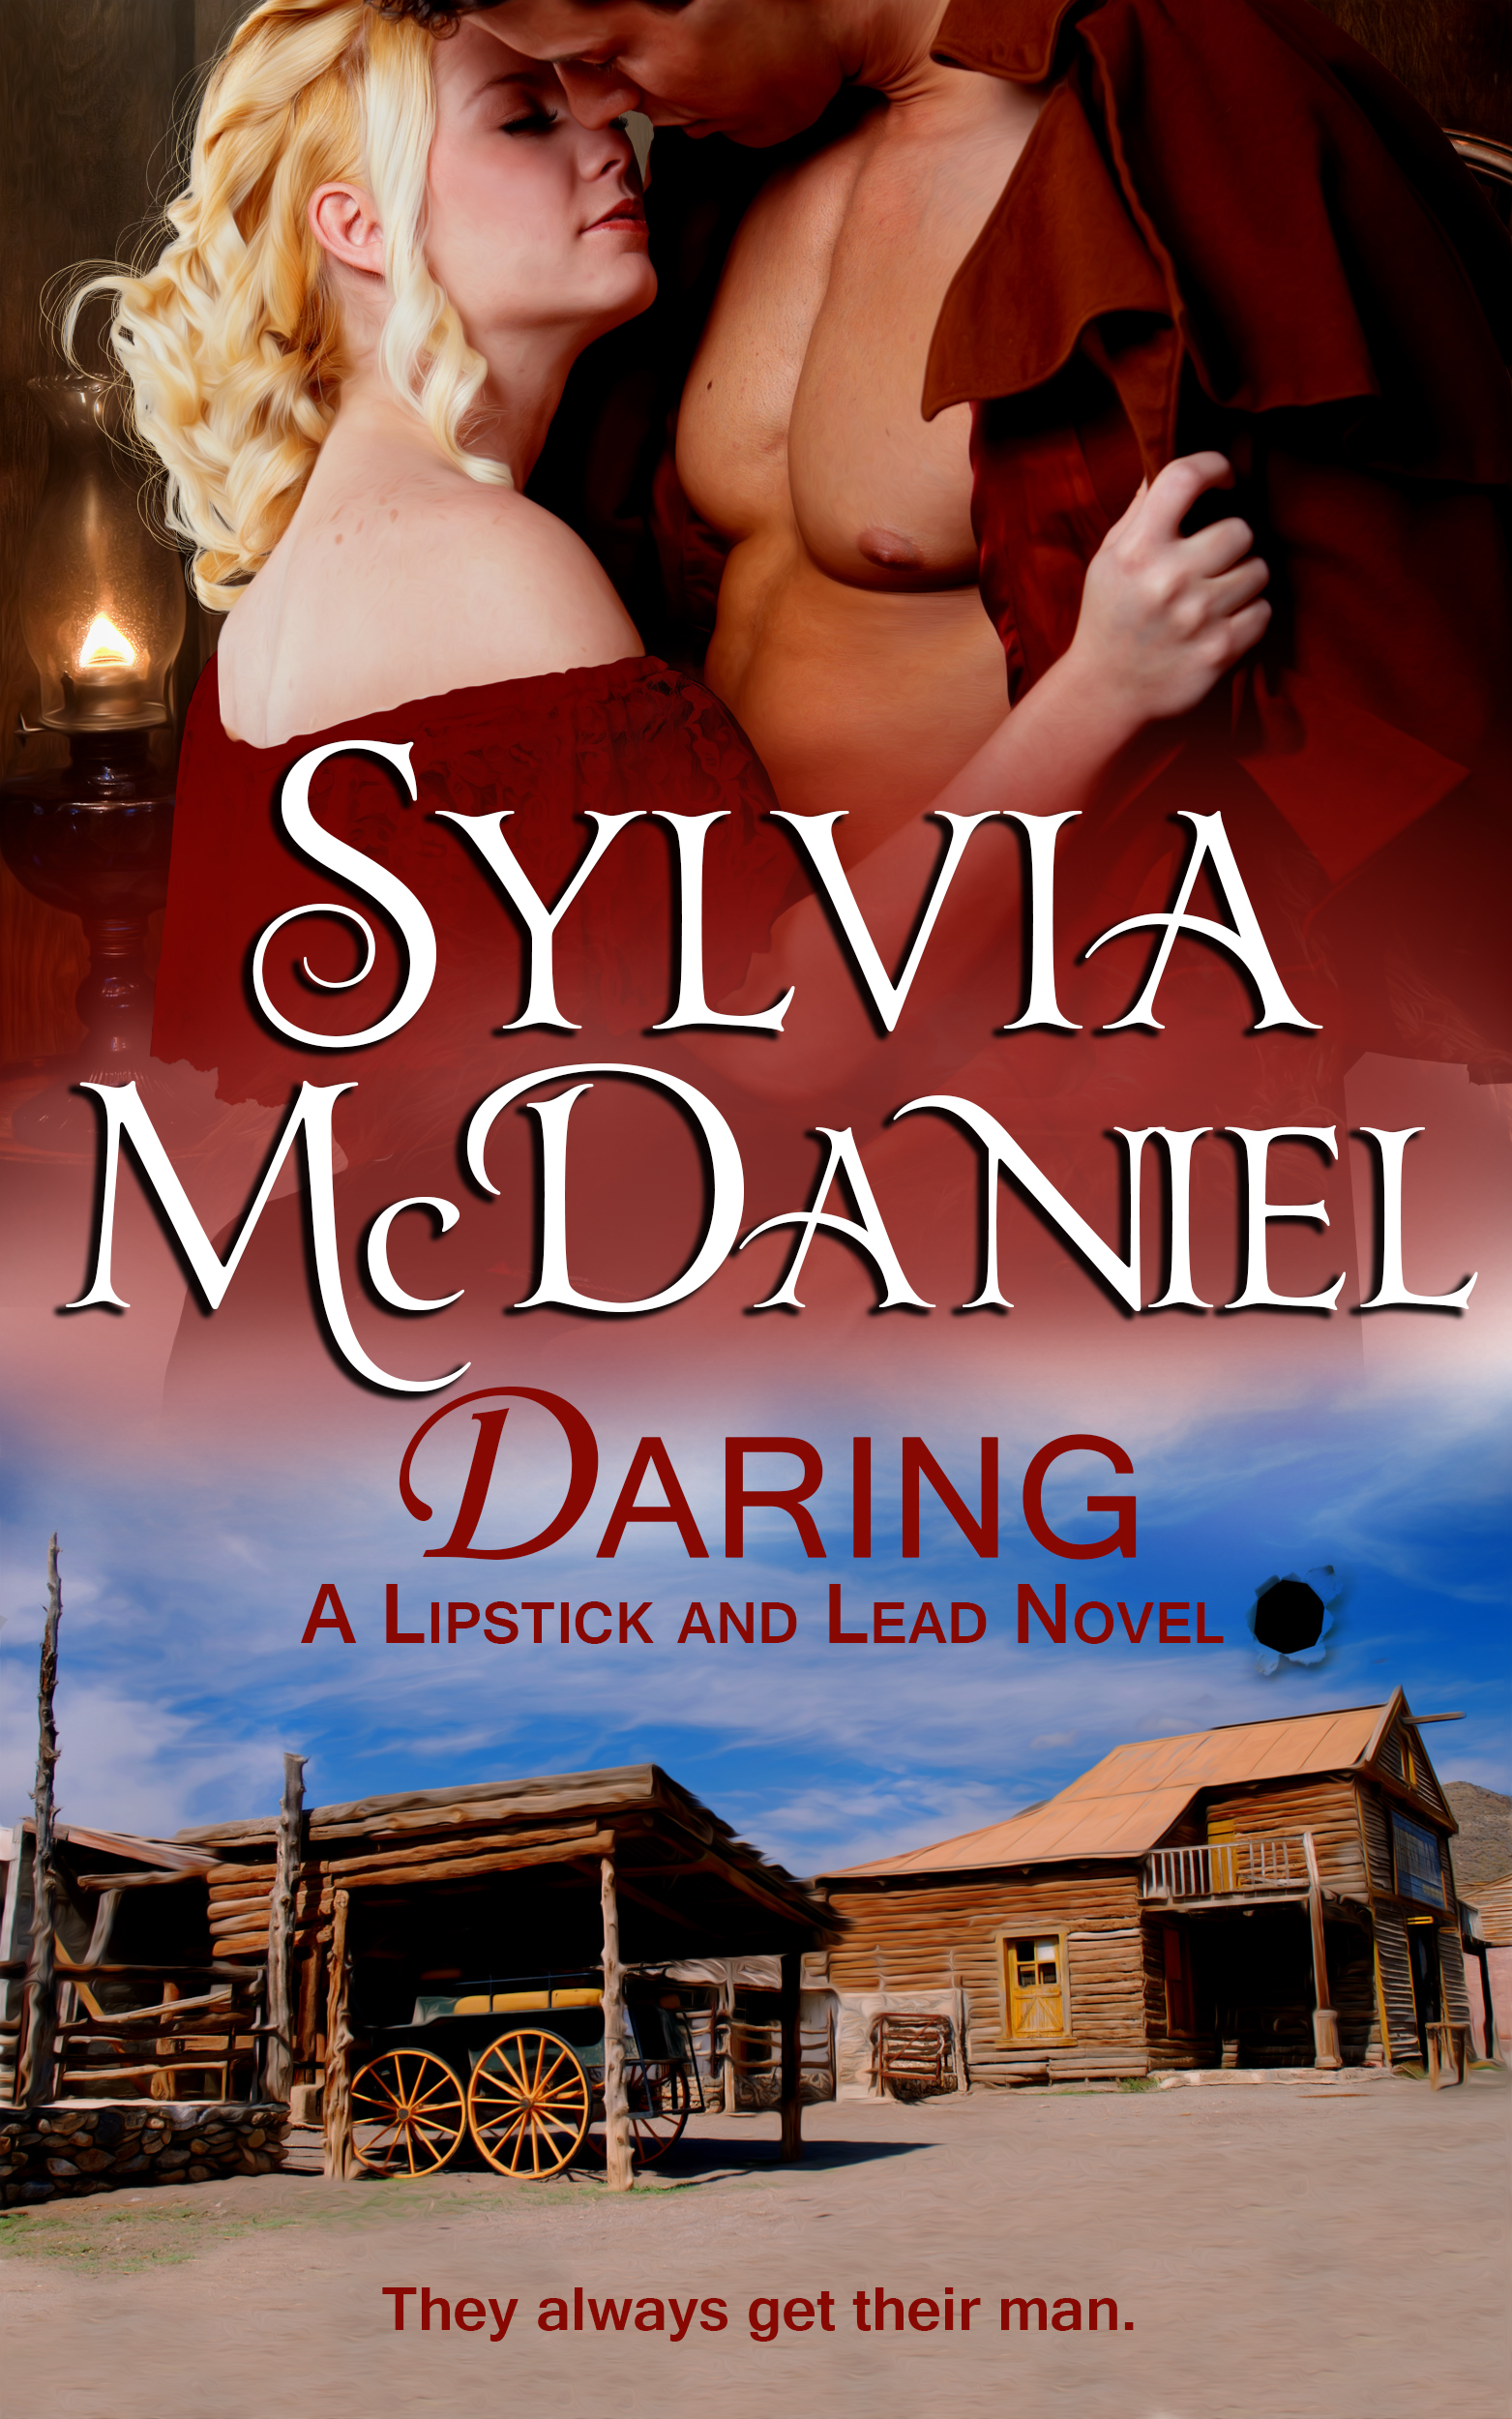 Cover of Daring by Sylvia McDaniel. A blonde woman in the arms of a handsome cowboy.